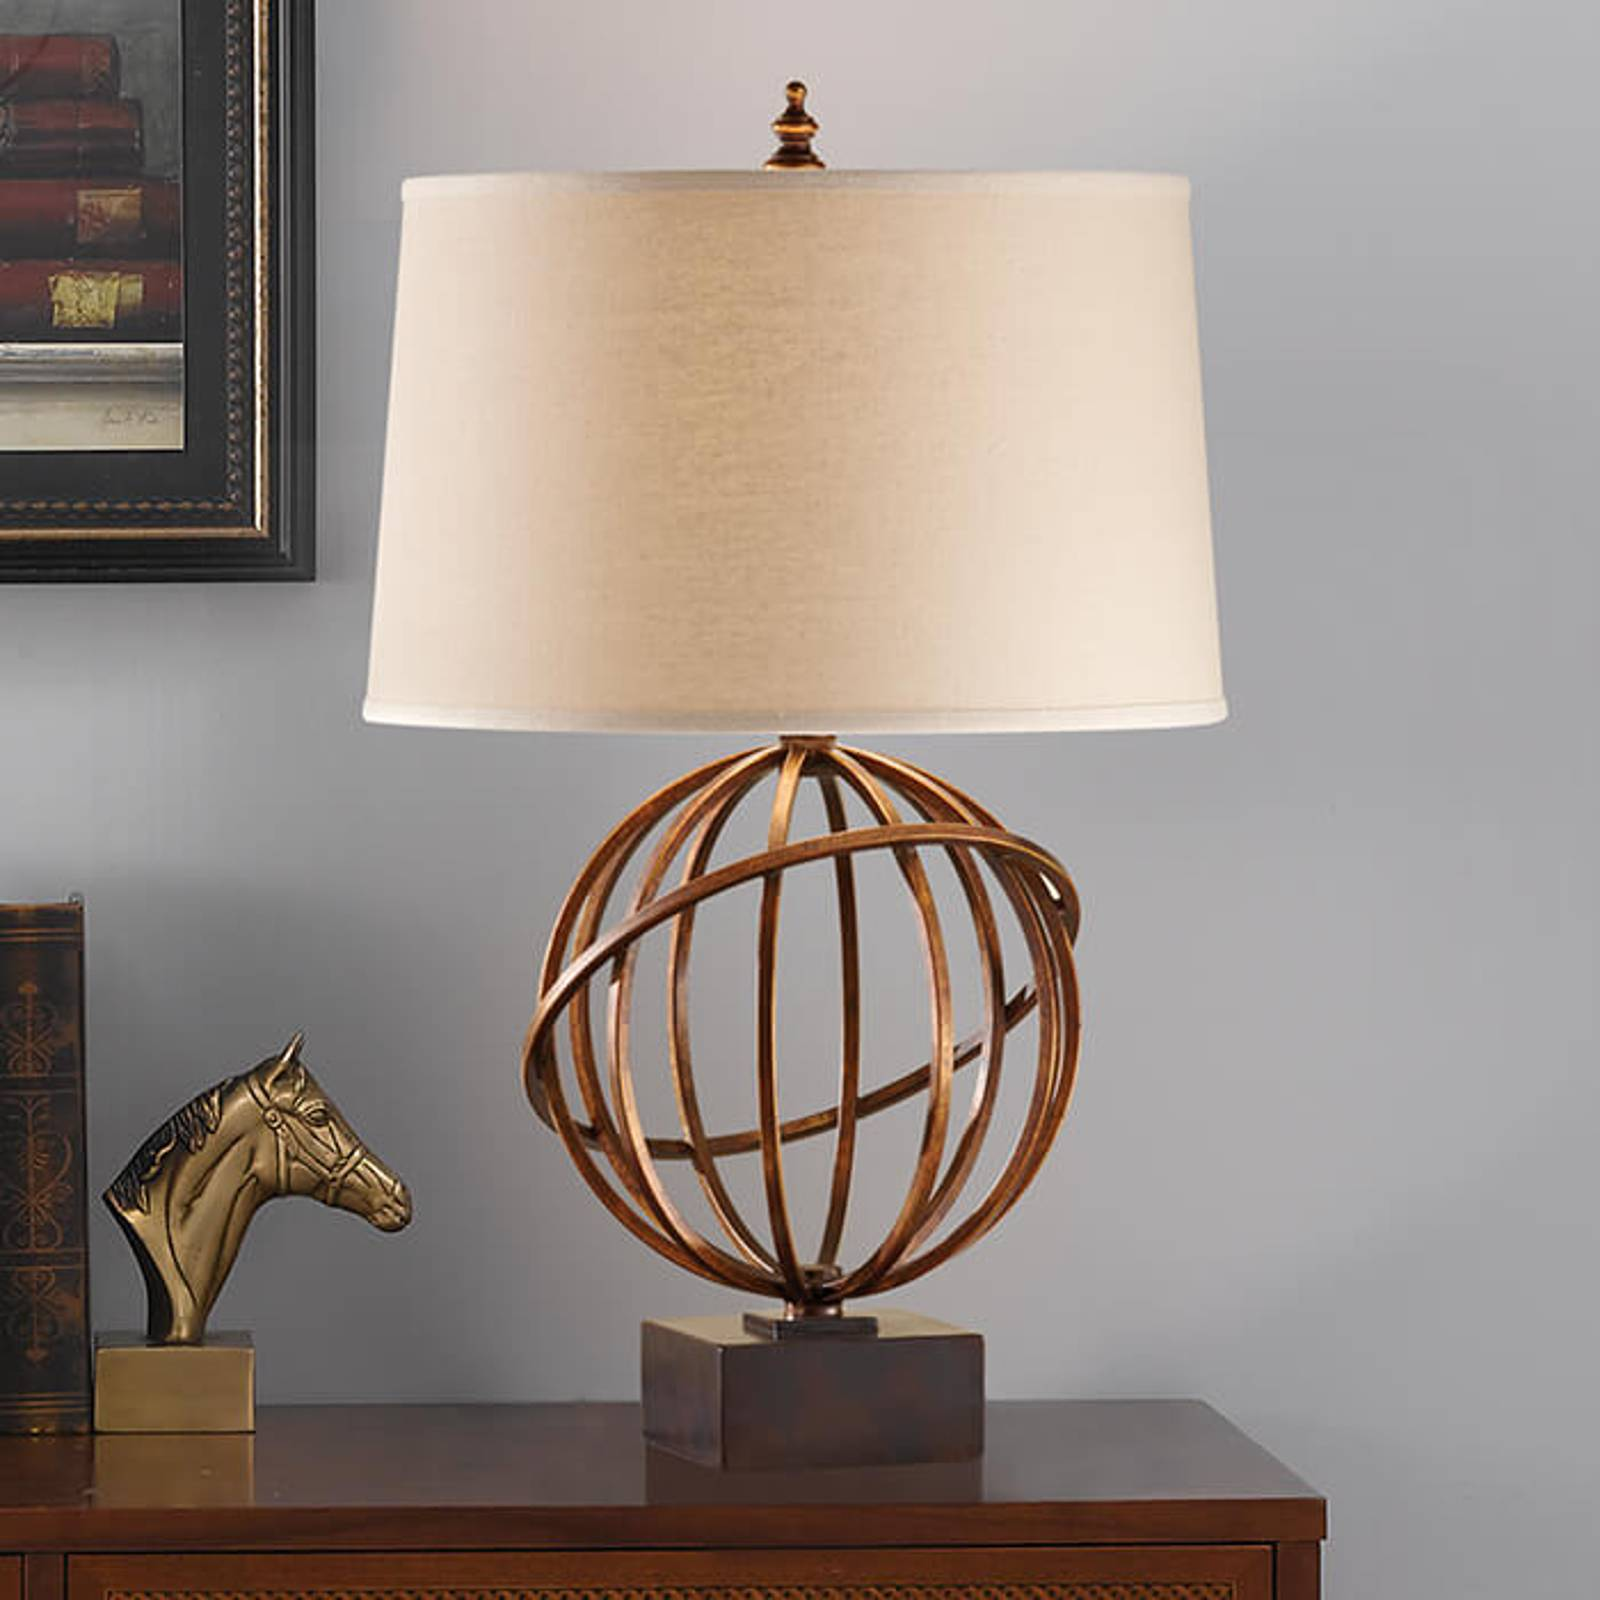 Well-designed fabric table lamp Spencer from Elstead